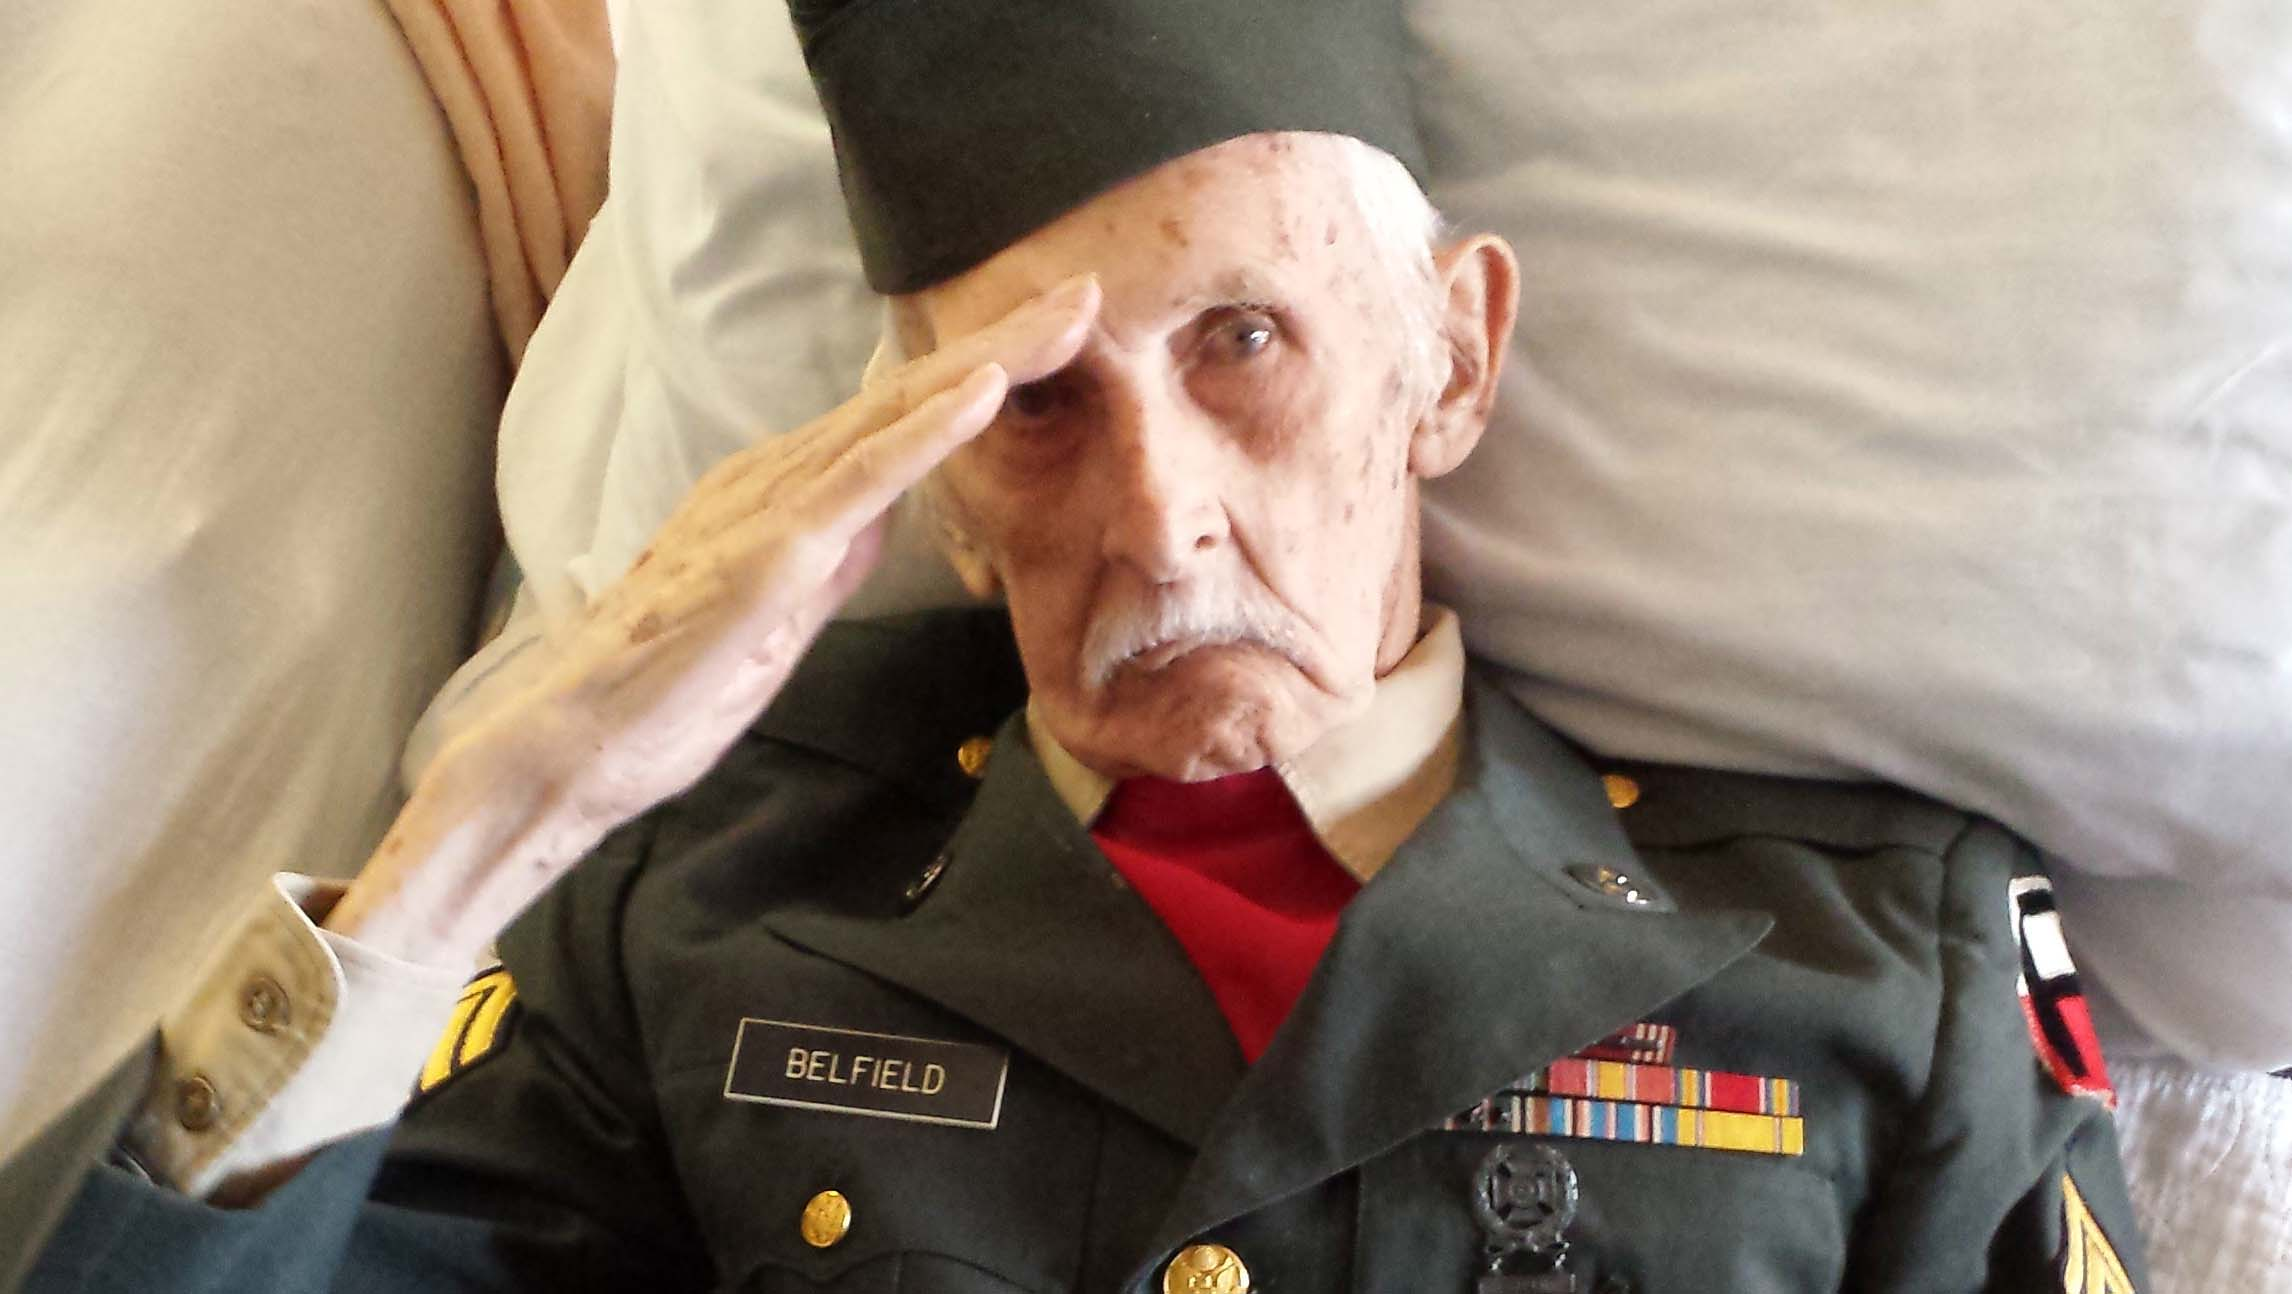 Veteran, 98, dons uniform in bed for salute hours before